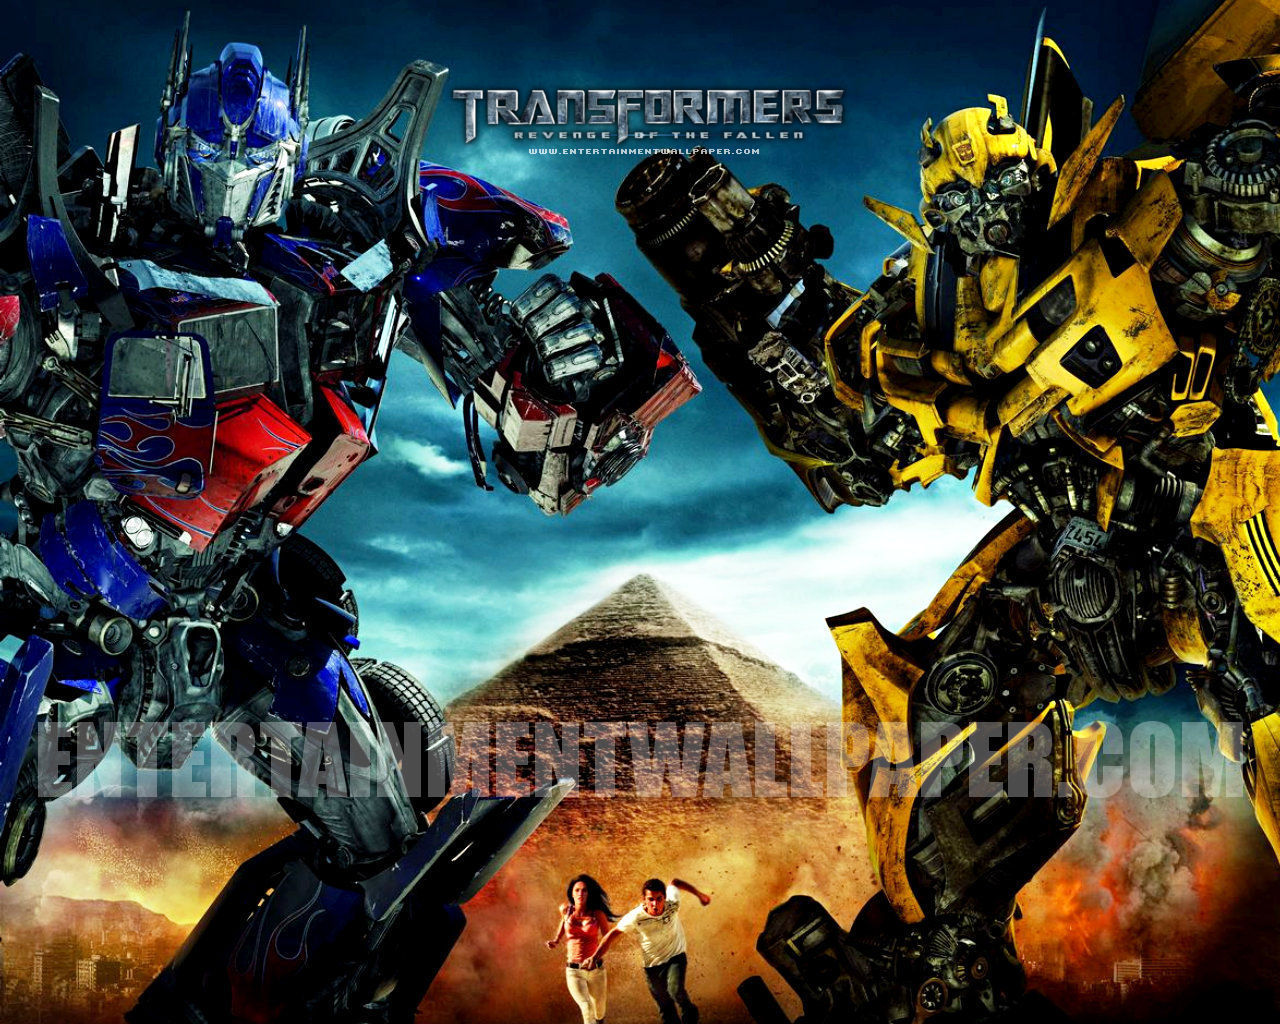 transformers images transformers: revenge of the fallen hd wallpaper